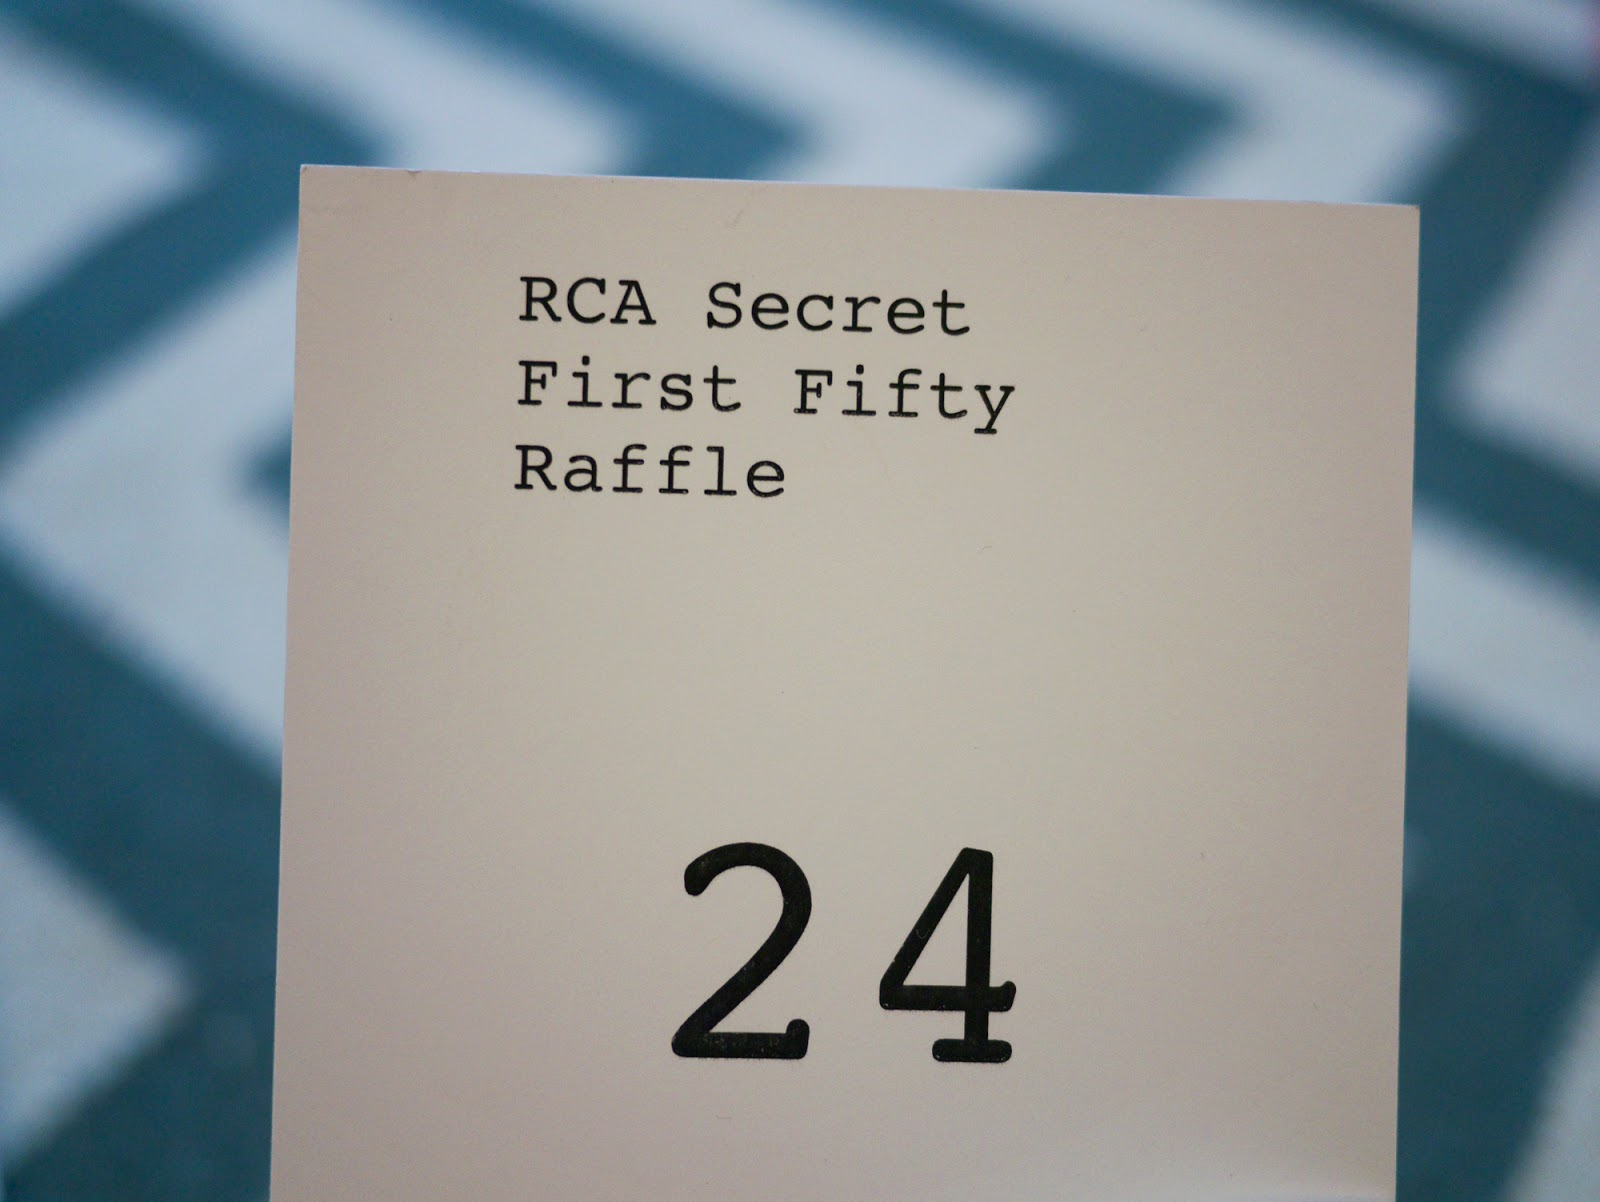 Royal College of Art RCA Secret postcard sale 2013 first fifty